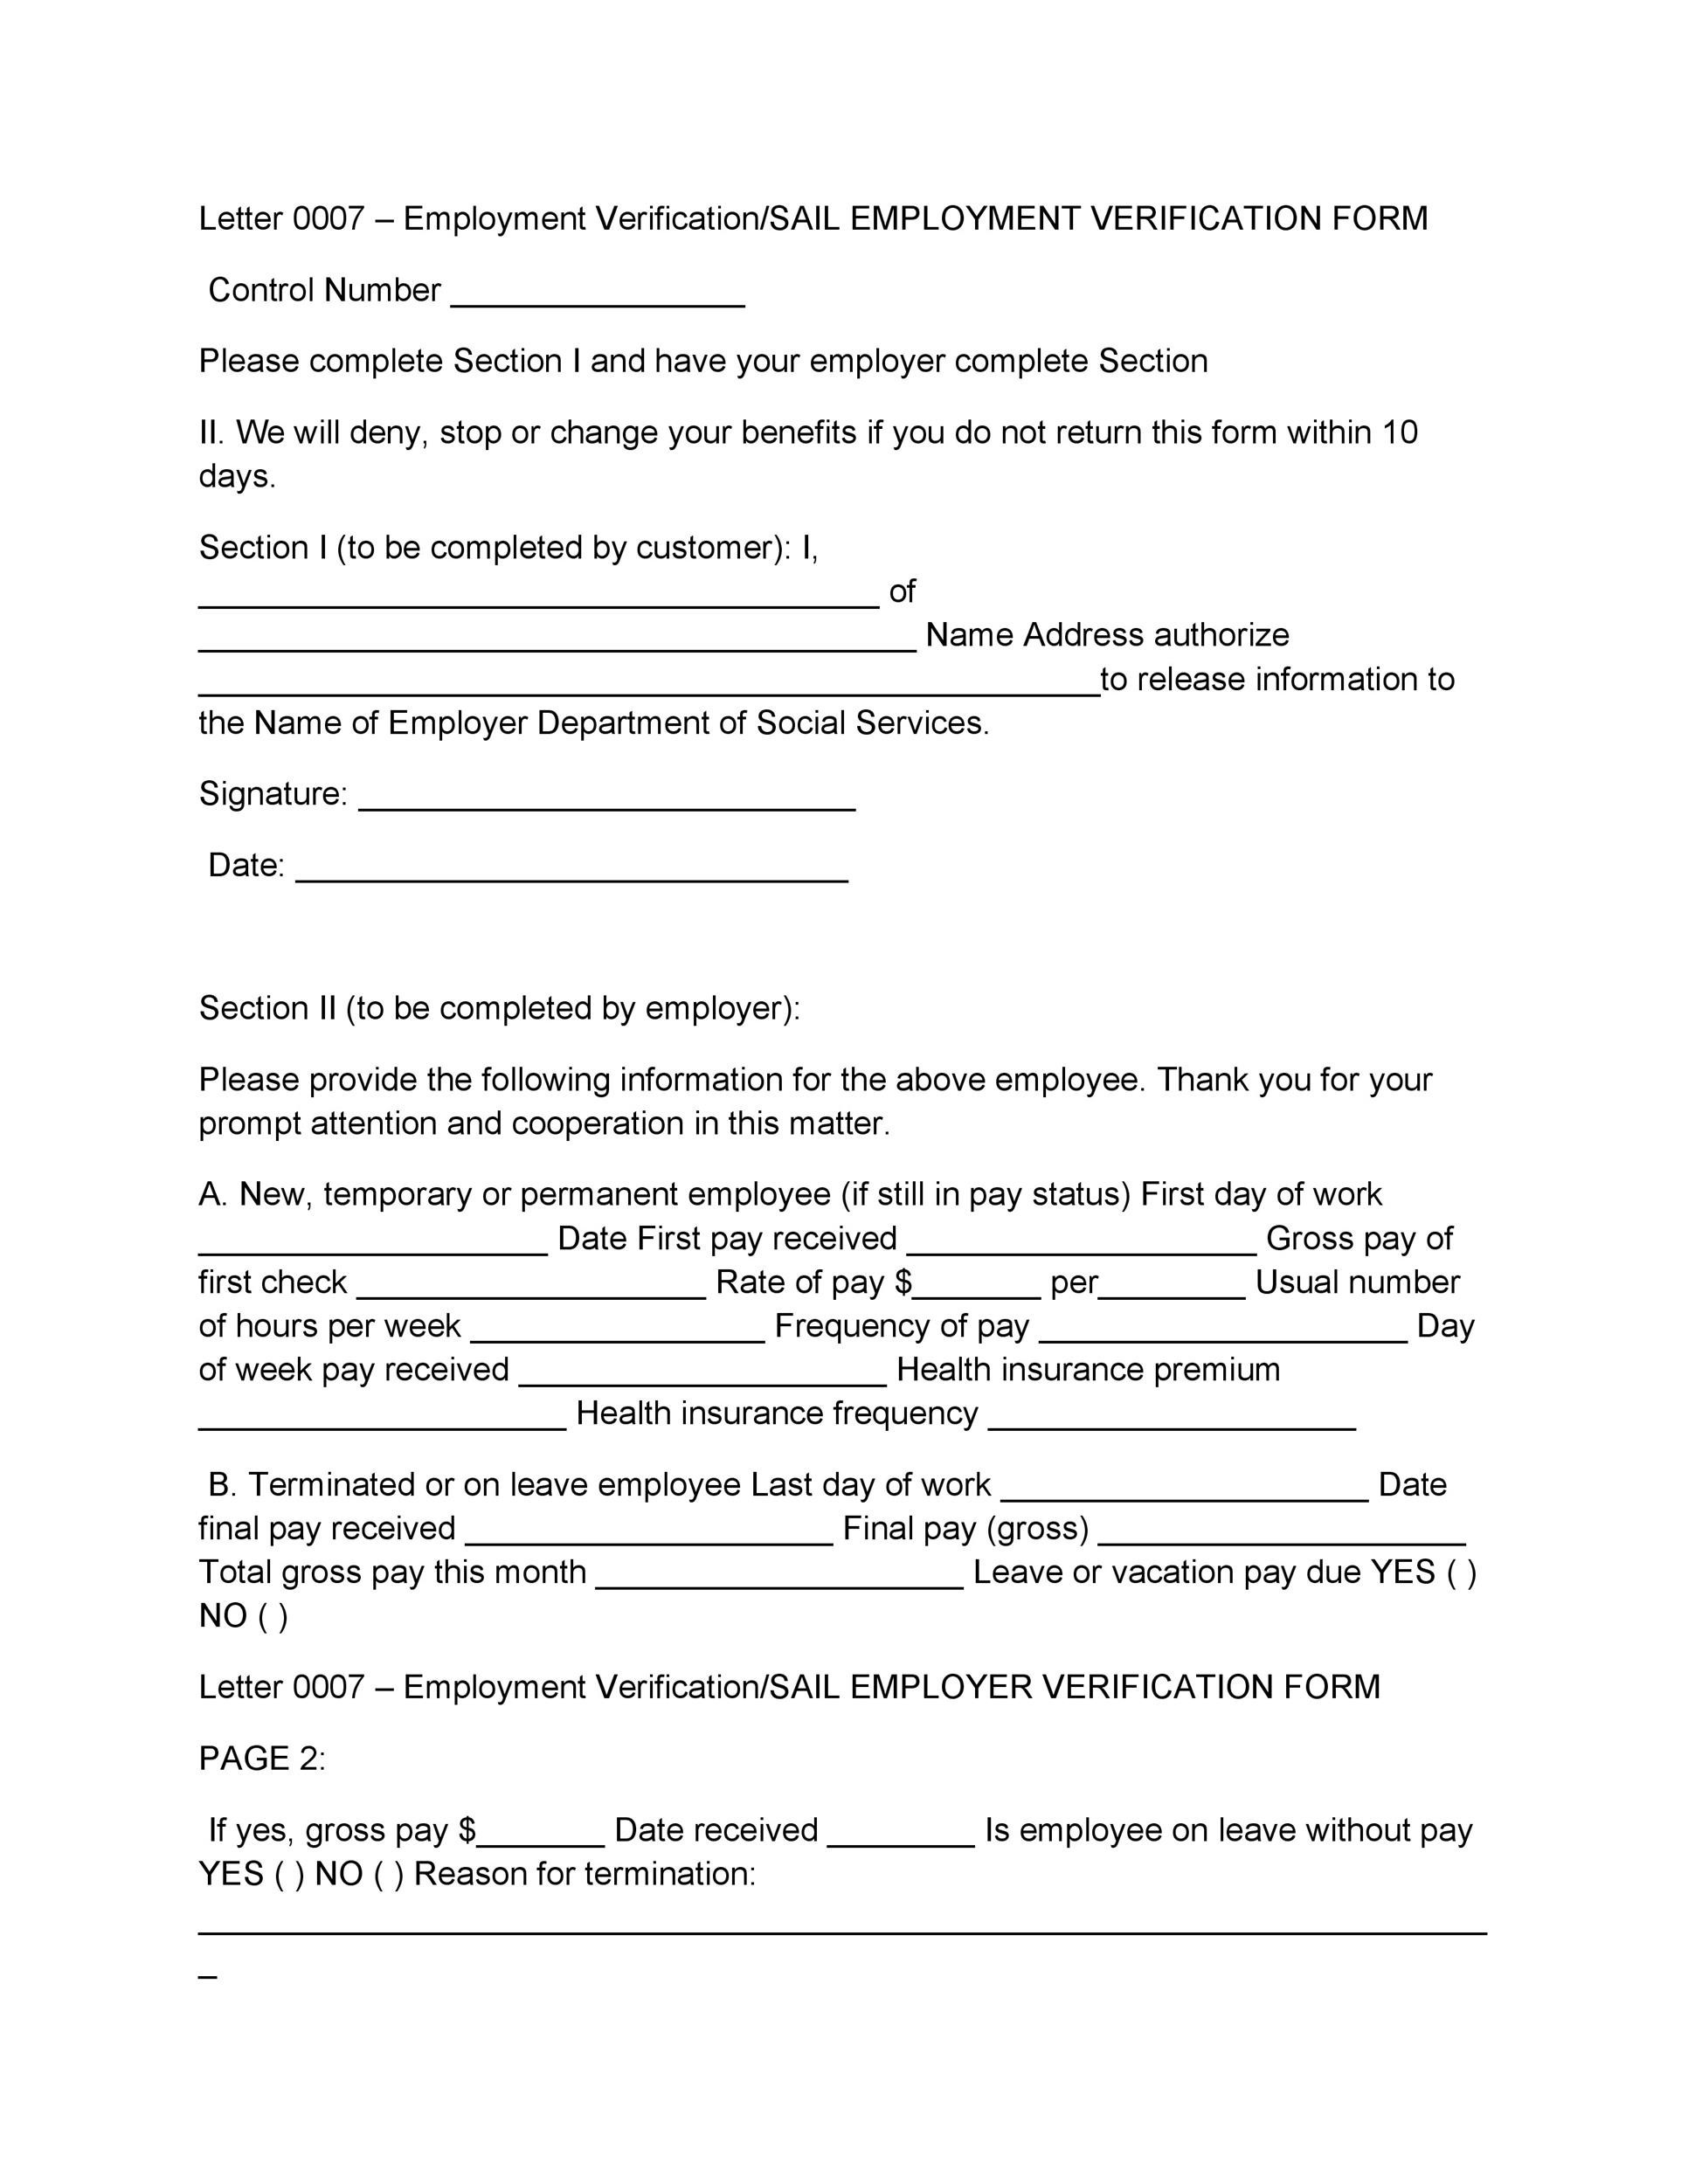 Proof Of Employment Letters Verification Forms  Samples